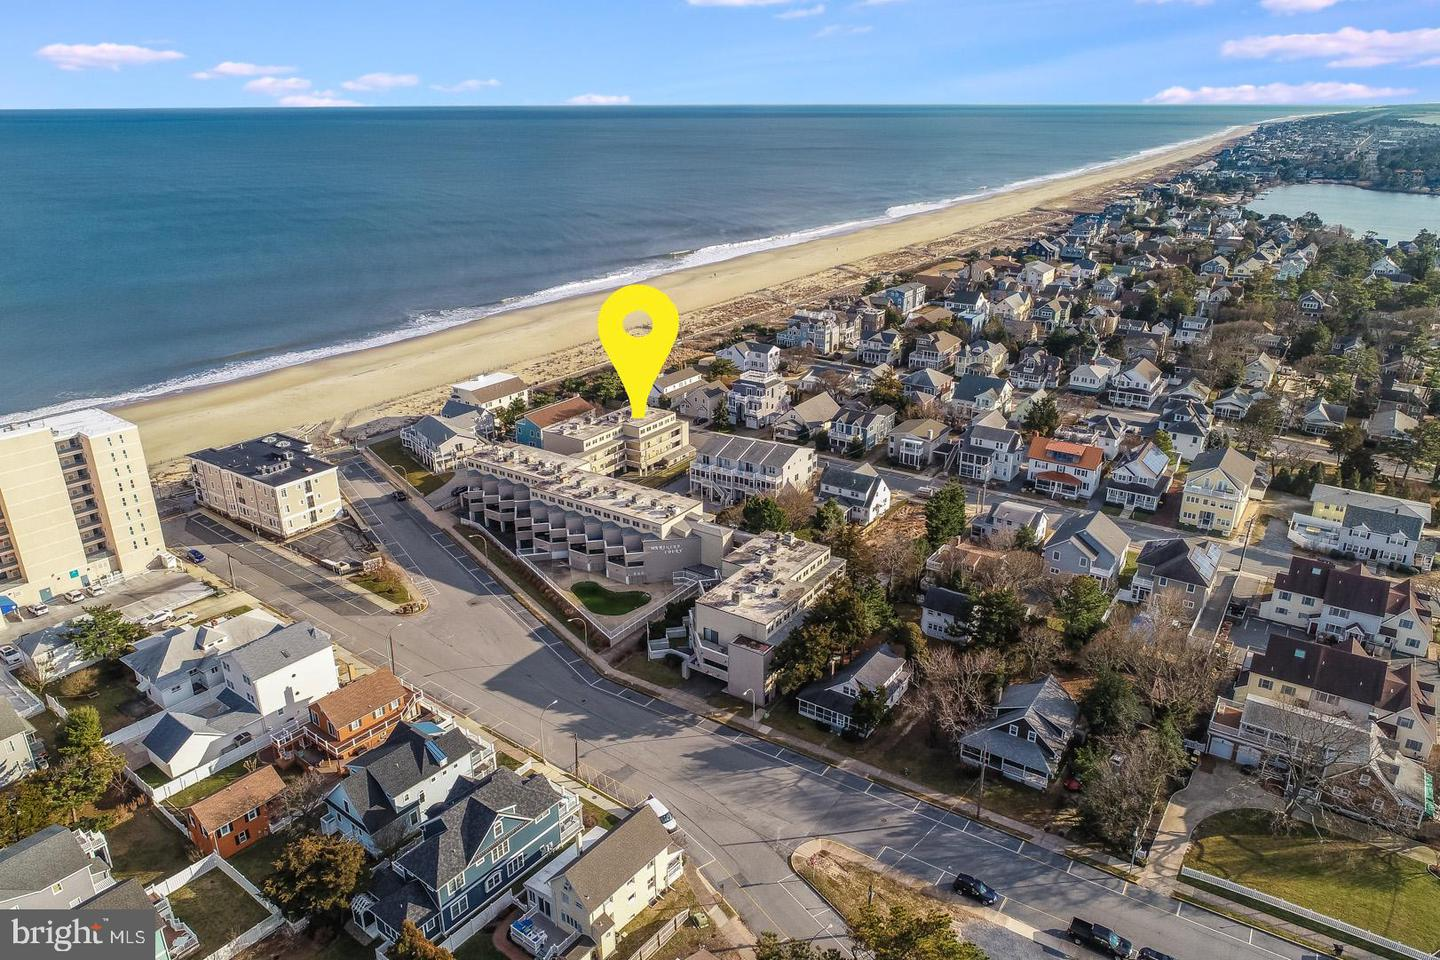 DESU129972-301391657596-2019-02-05-22-53-54 4 Laurel St #112c | Rehoboth Beach, DE Real Estate For Sale | MLS# Desu129972  - Rehoboth Beach Real Estate - Bryce Lingo and Shaun Tull REALTORS, Rehoboth Beach, Delaware